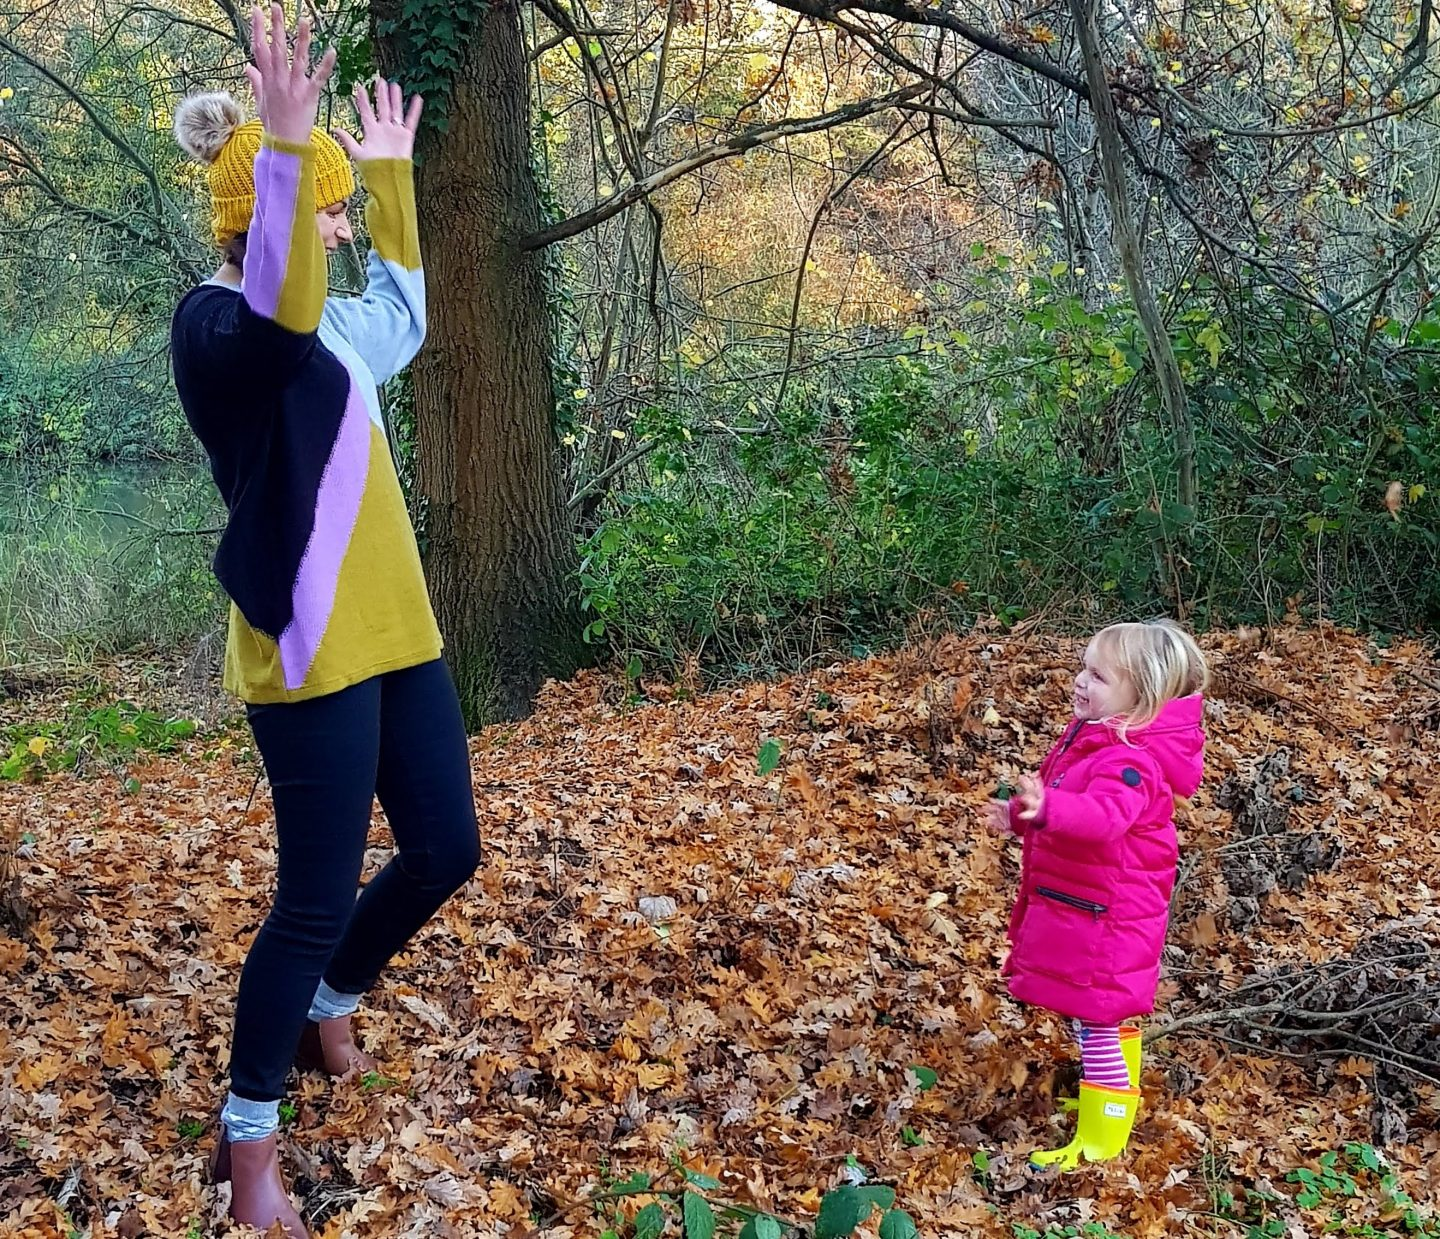 Family Days Out: Staying warm and looking fab this Autumn